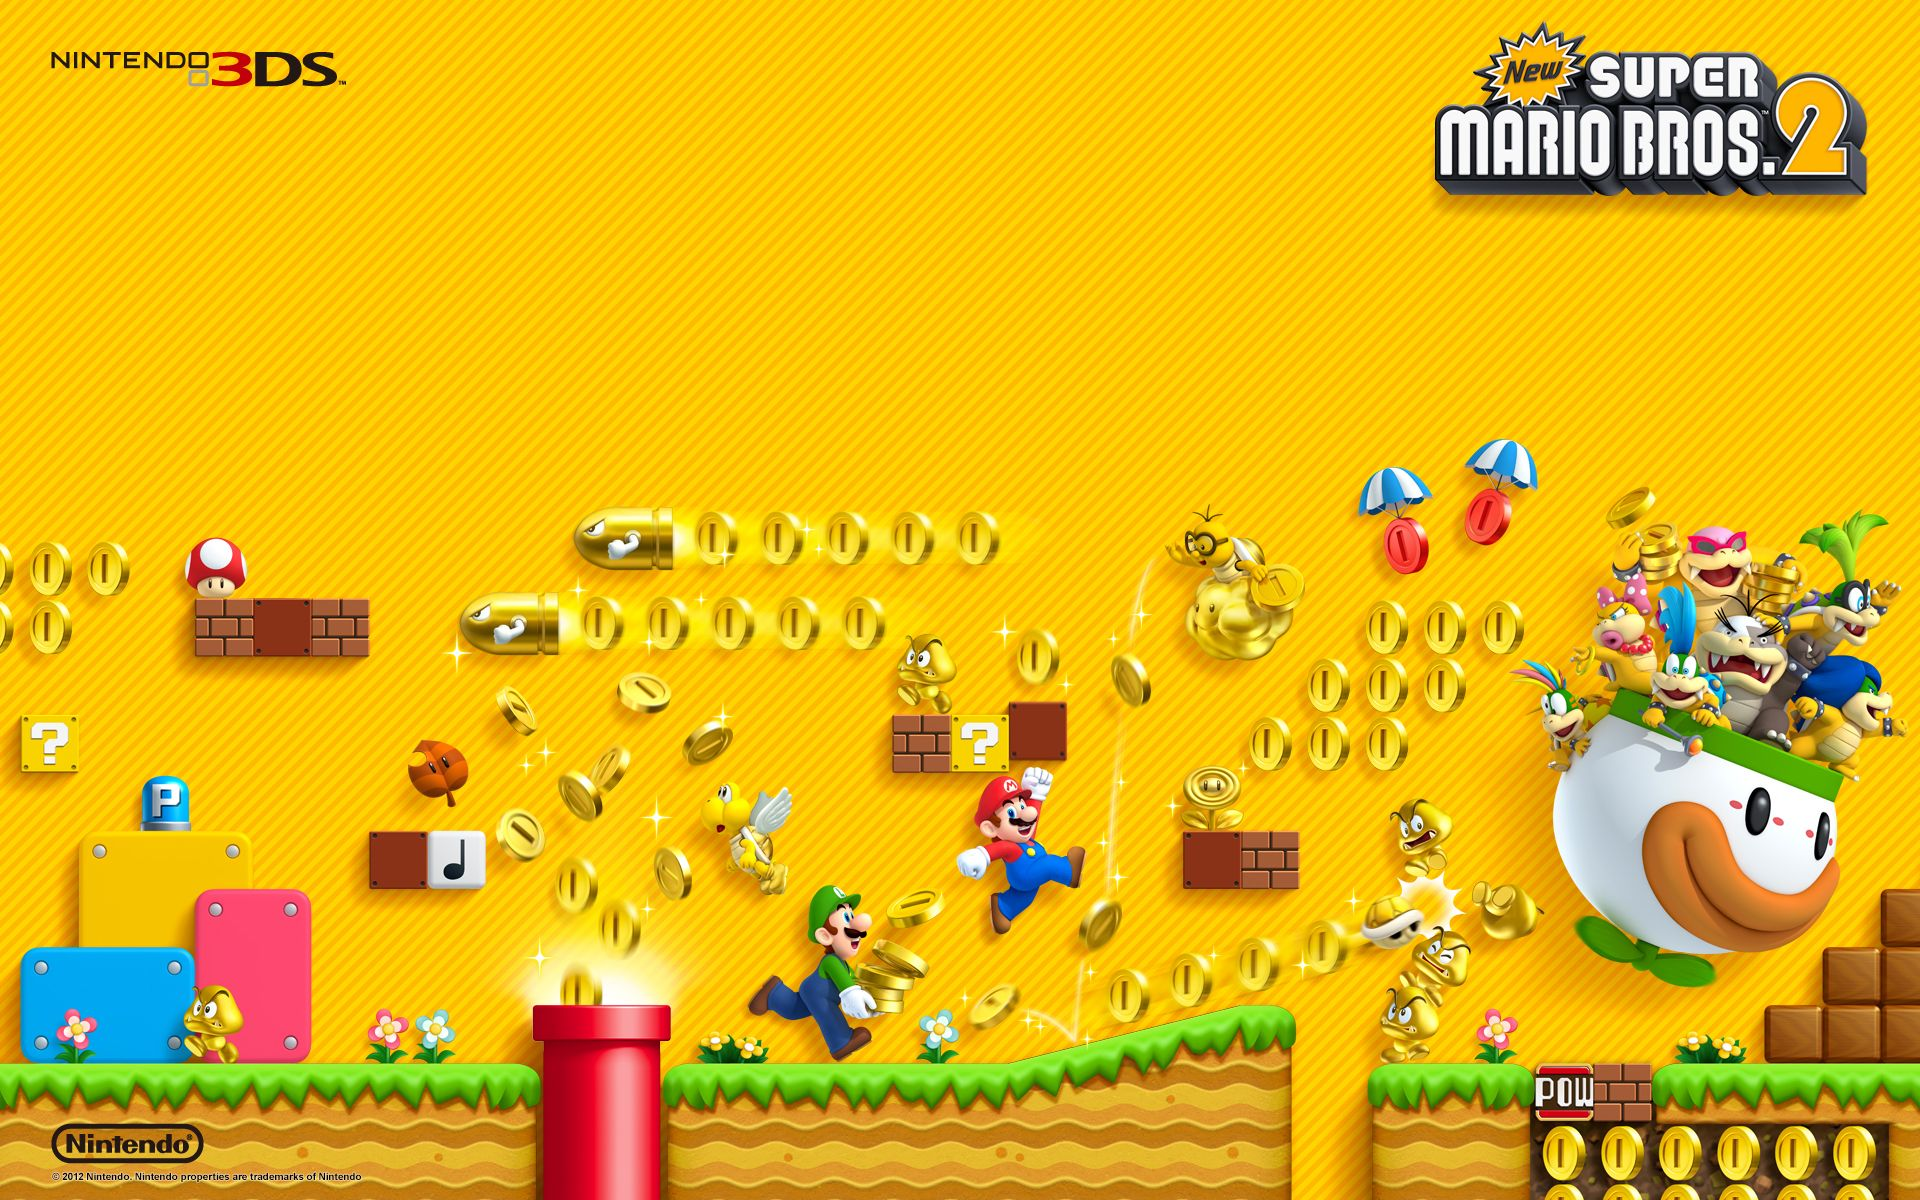 1024x1024 New Super Mario Bros Wii Ipad Wallpaper